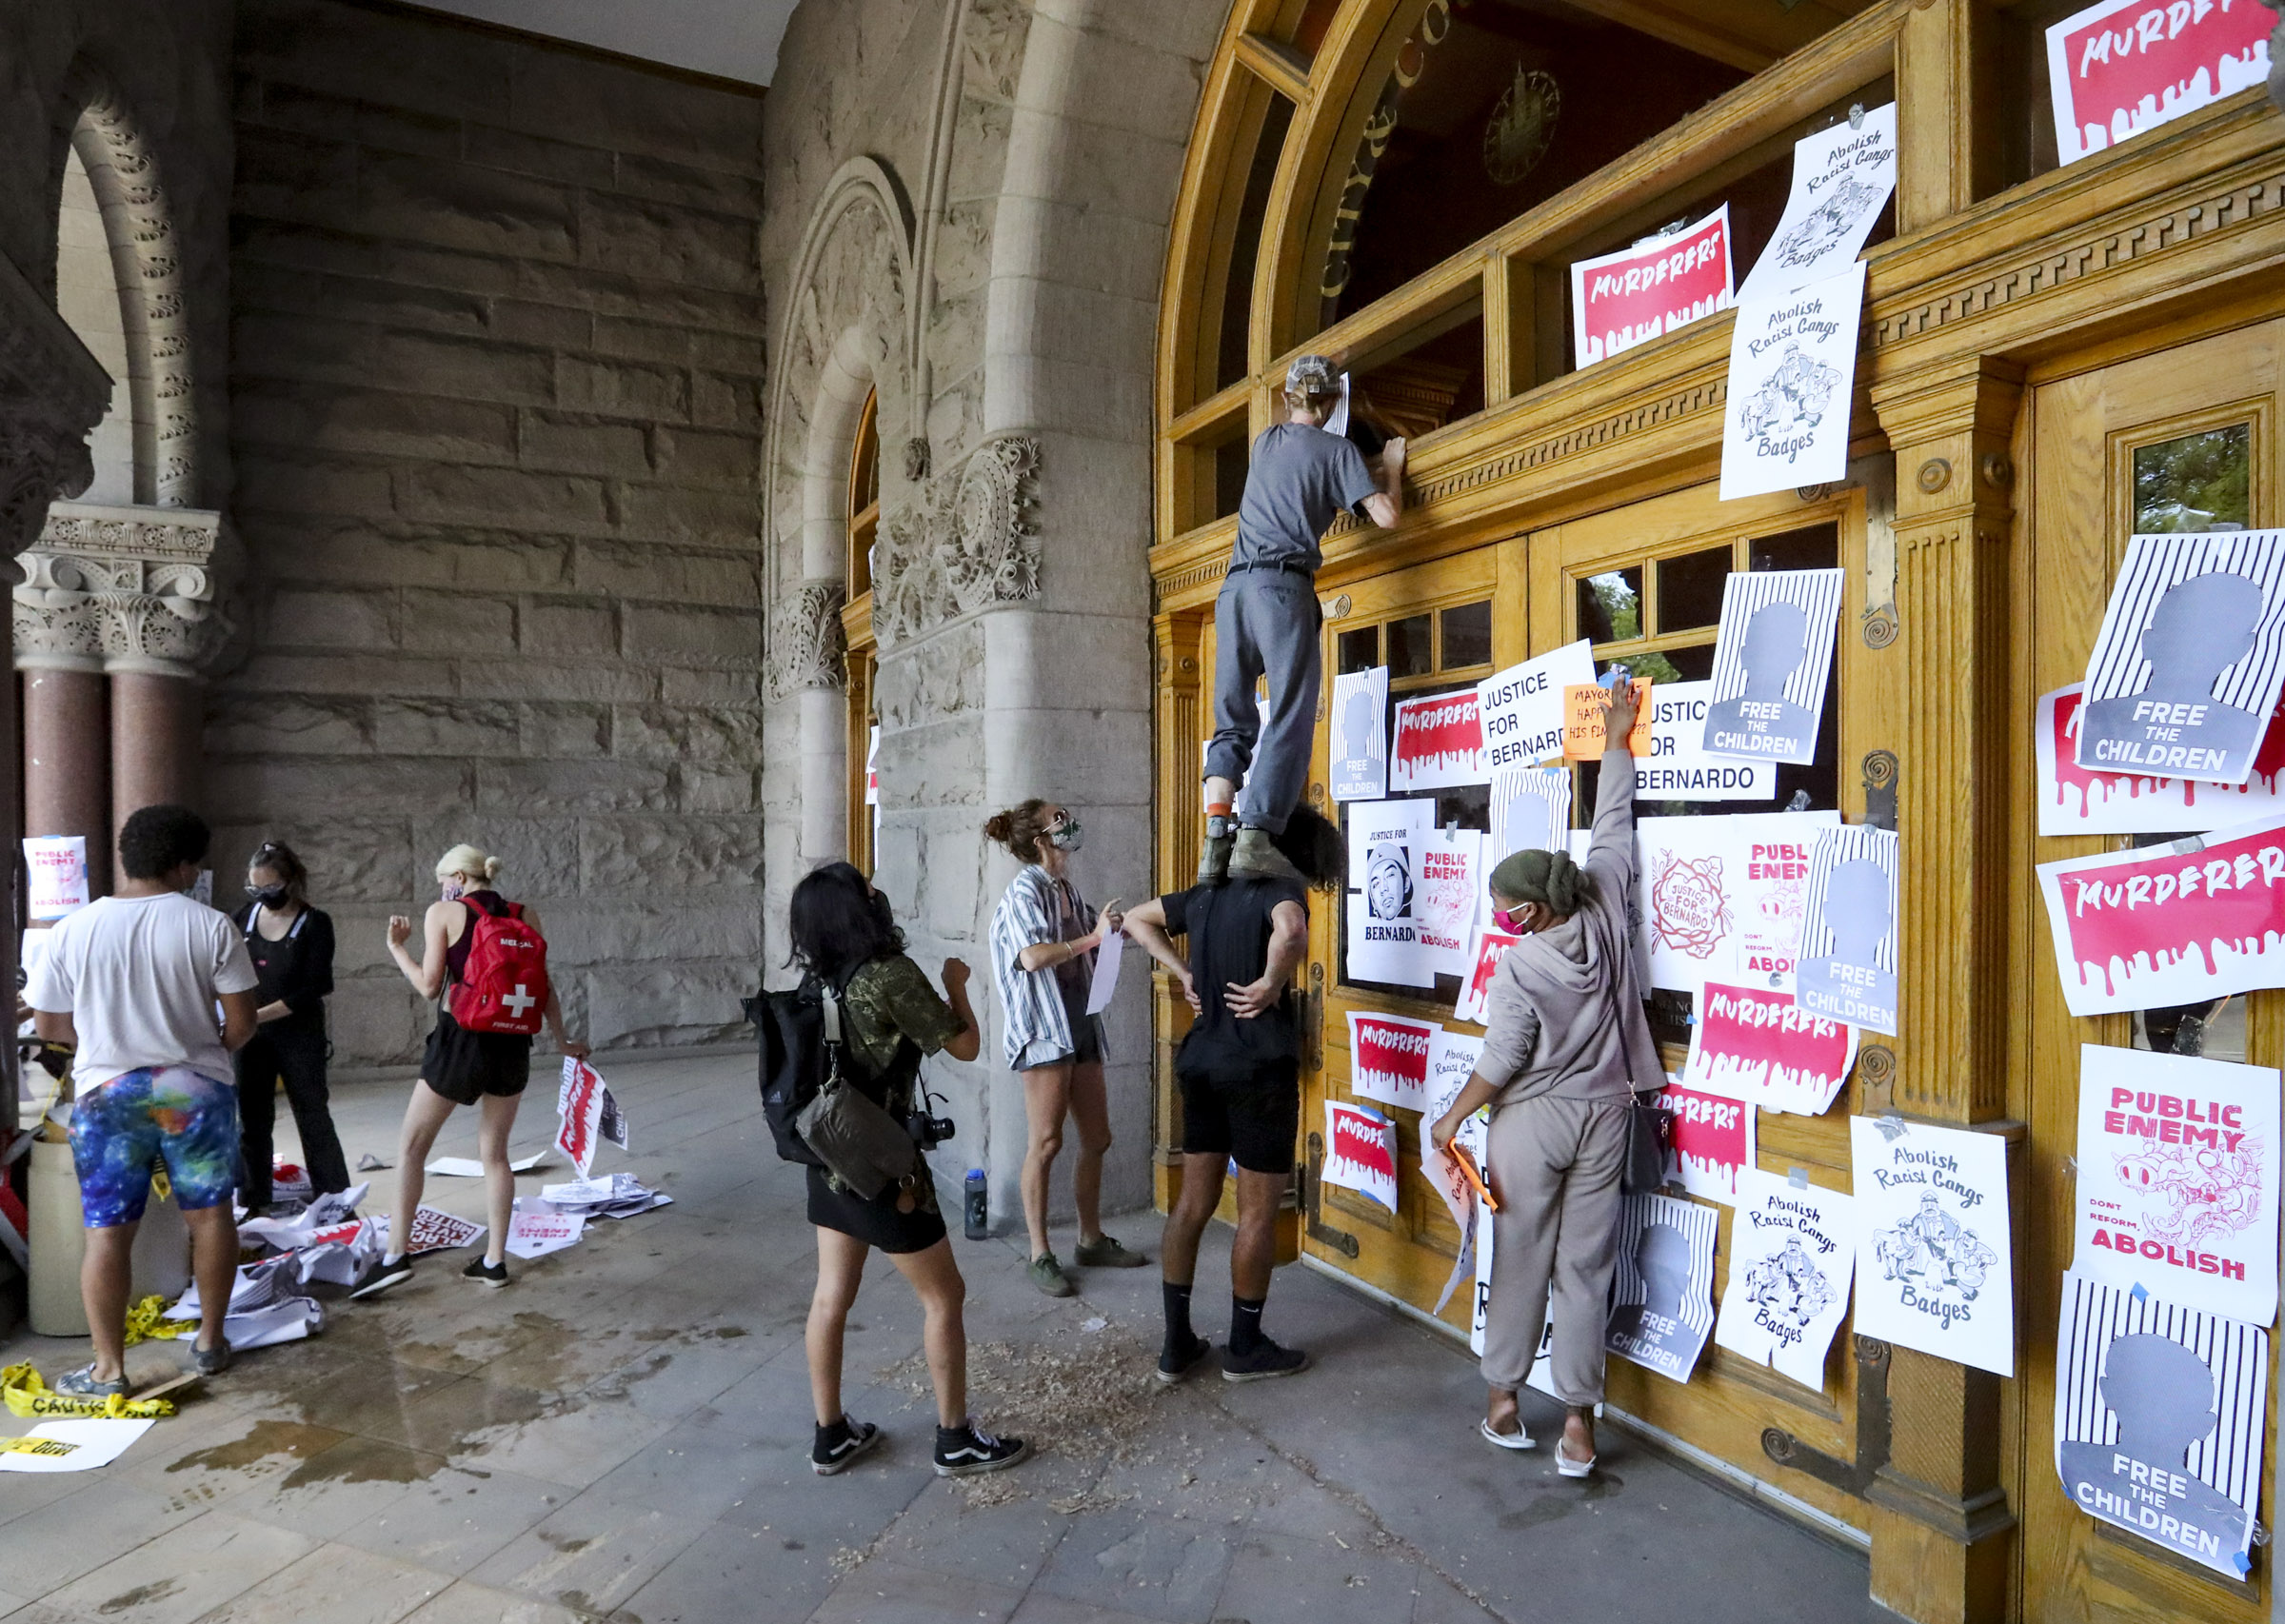 Demonstrators put signs on the Salt Lake City-County Building, on Thursday, July 2, 2020, during the latest protest decrying the death of Bernardo Palacios-Carbajal, who was shot and killed by police in May. The protest was cut short after the police made an arrest.